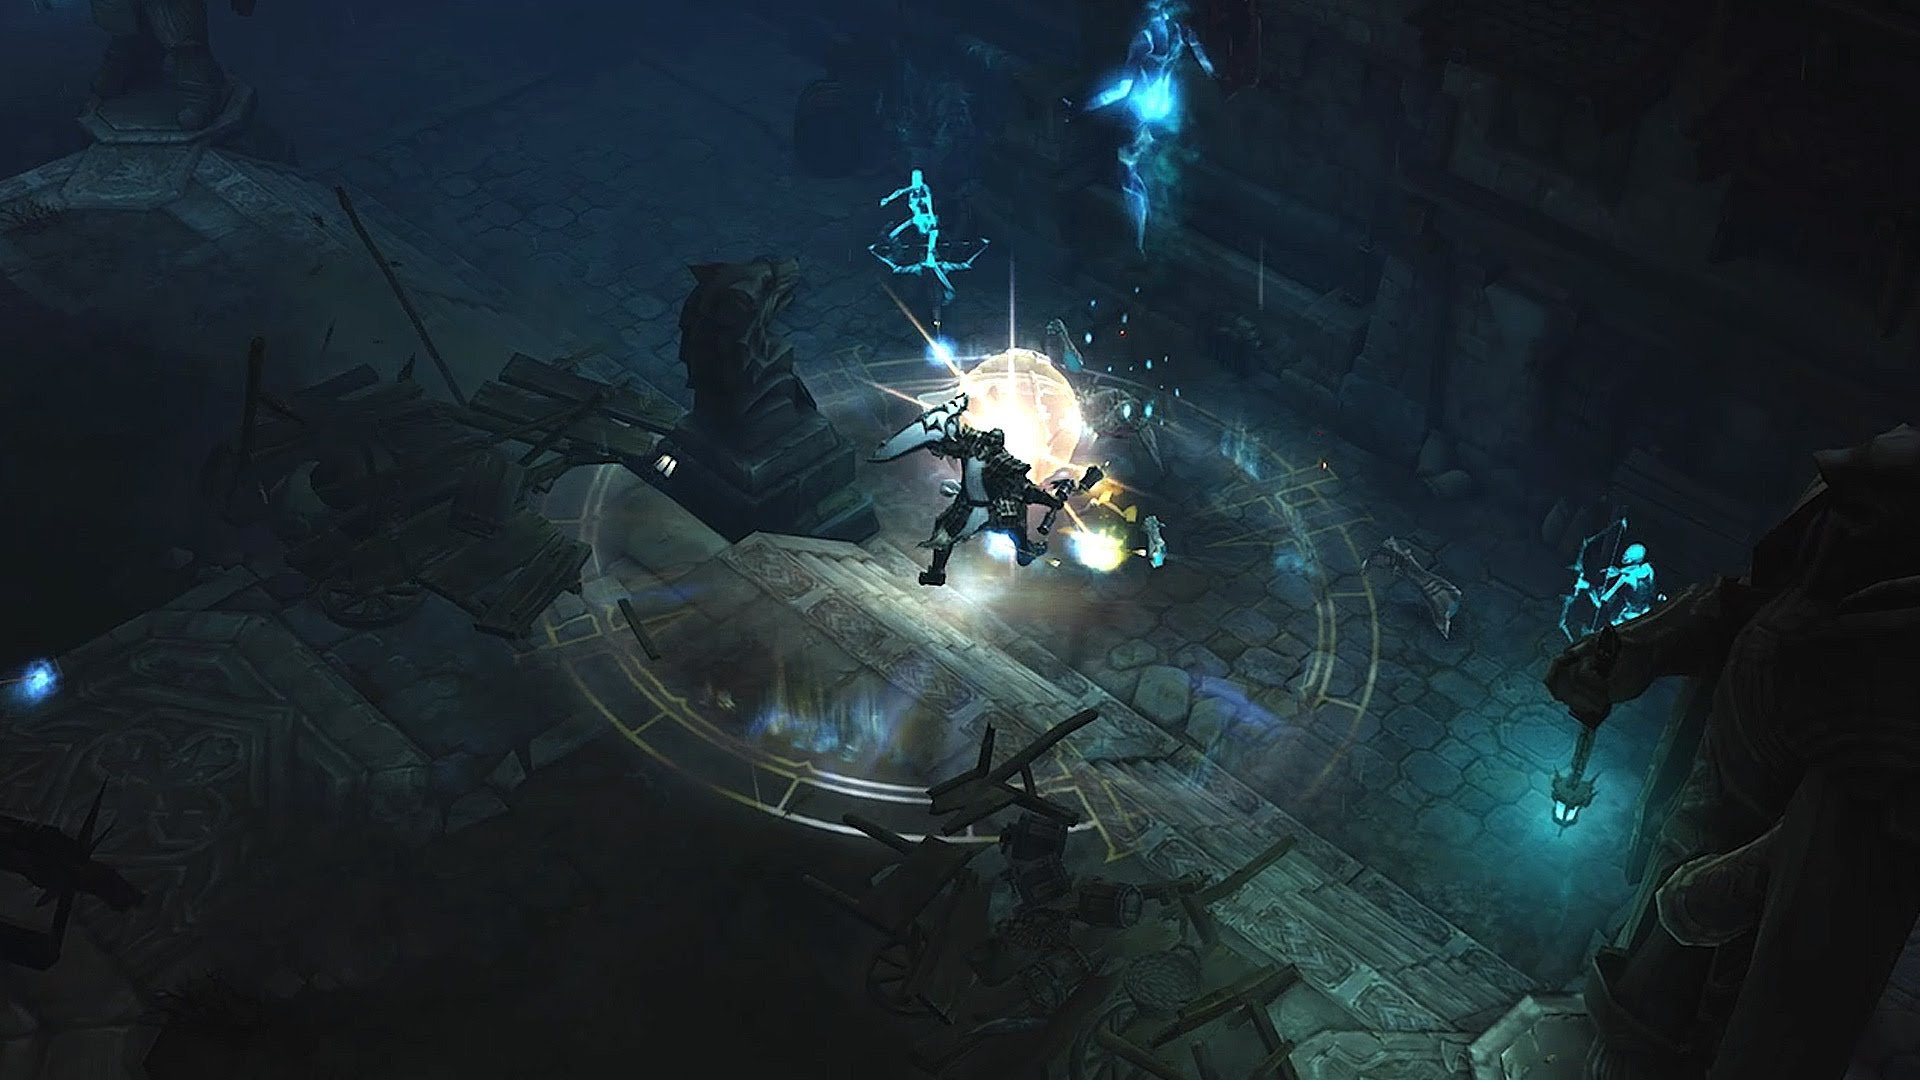 Diablo III 'Reaper of Souls' expansion announced